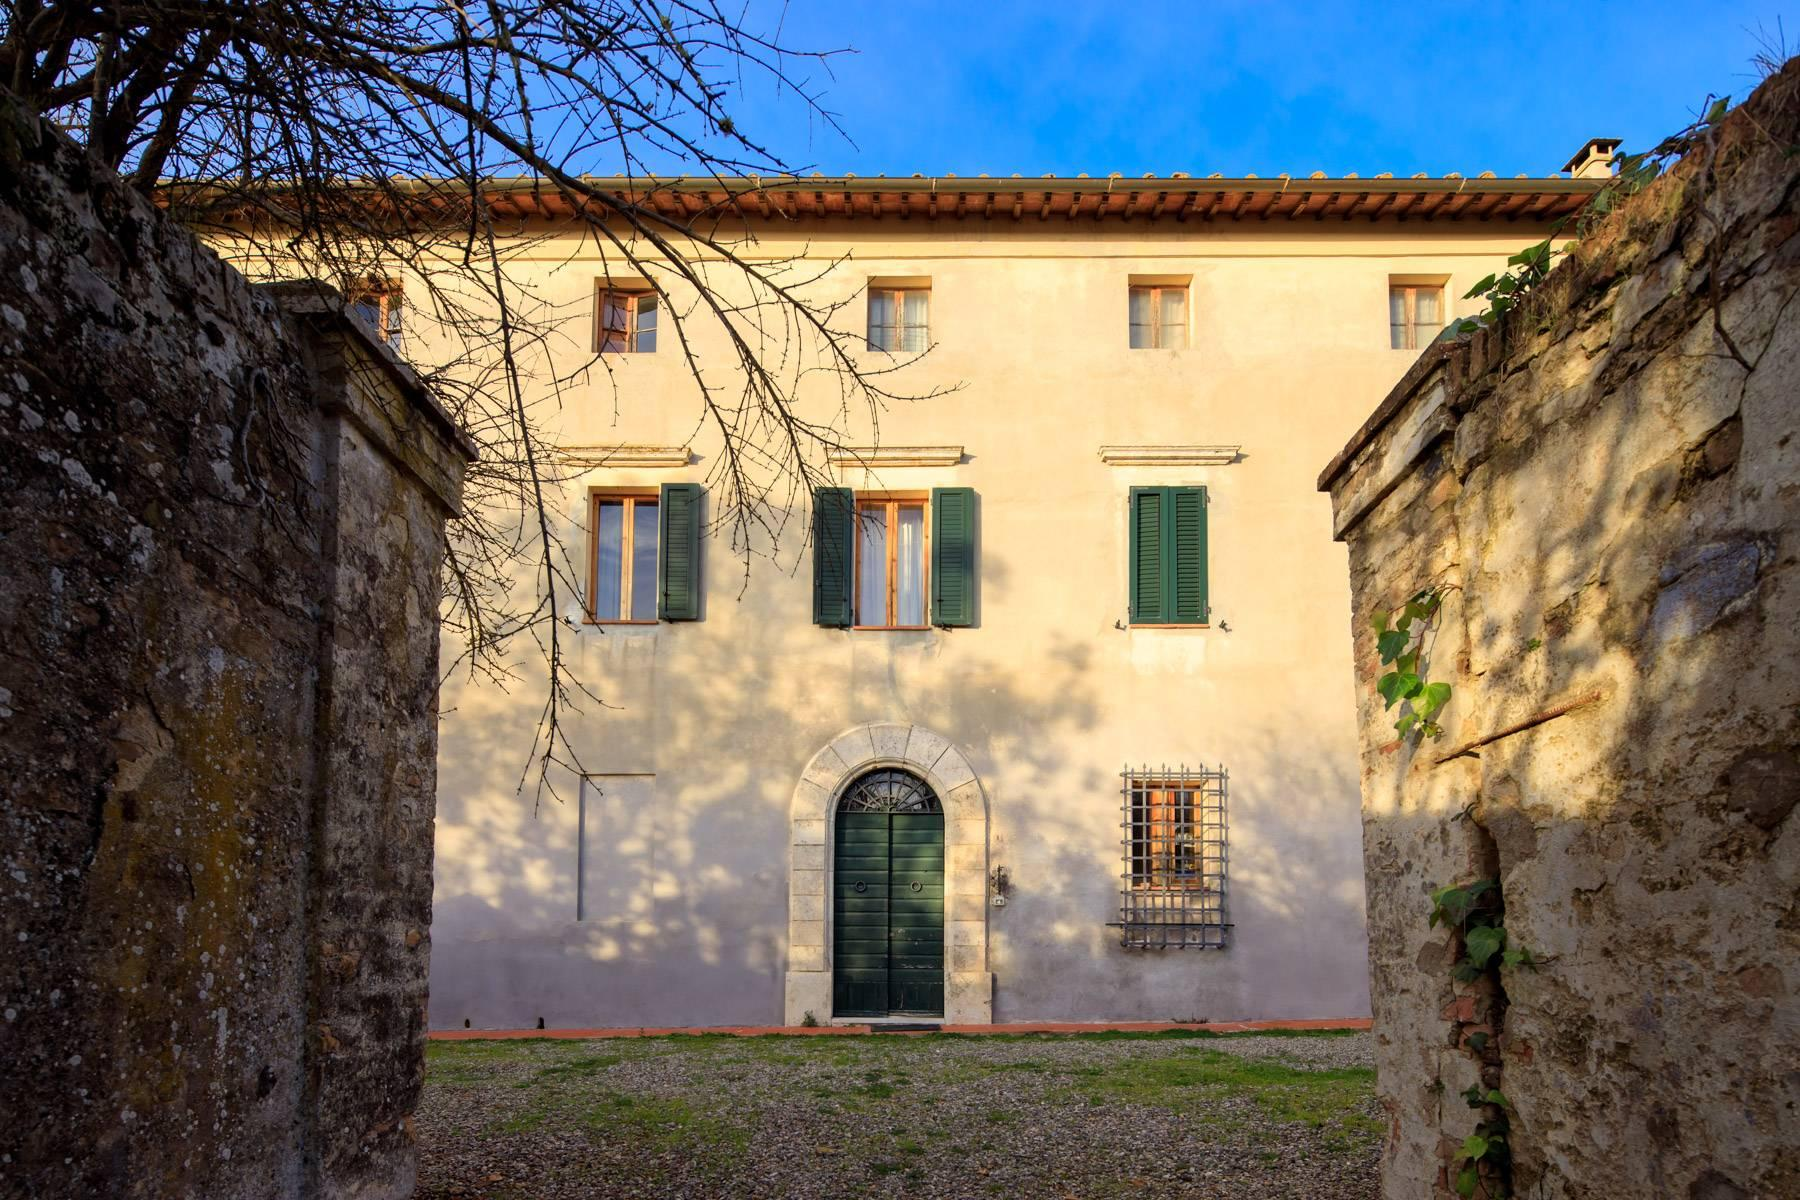 Historical villa in the country side just outside Siena - 2